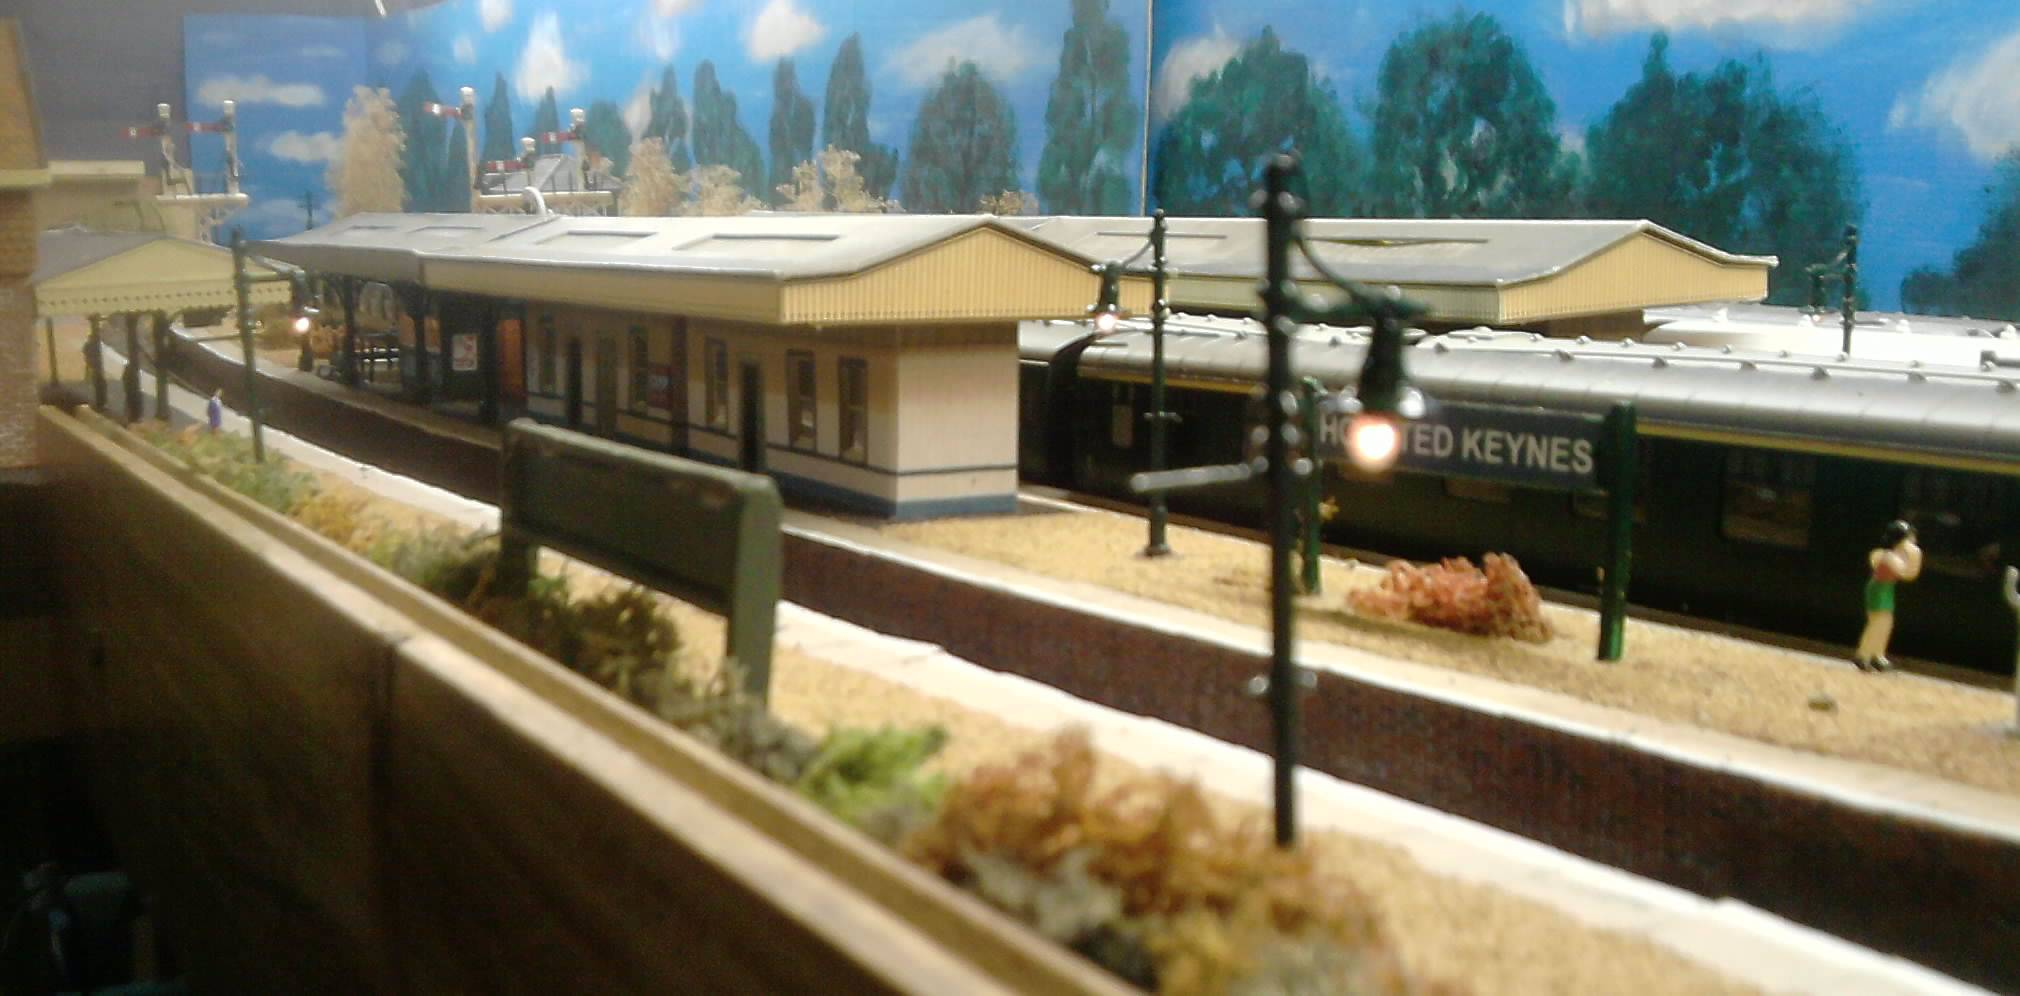 A view along the layout,